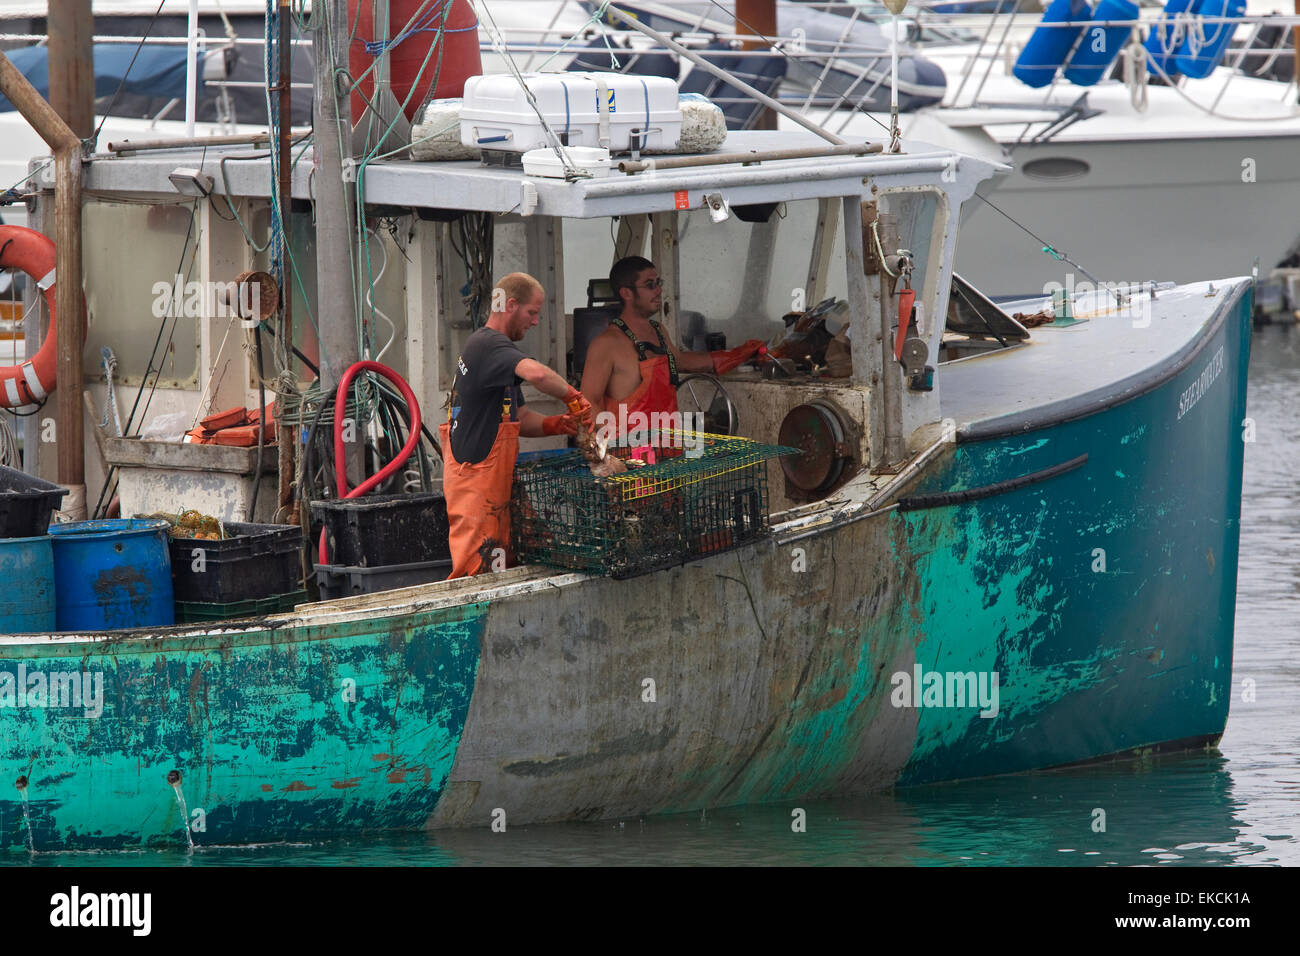 Maine lobster fishermen on lobster fishing boat Stock Photo, Royalty Free Image: 80798294 - Alamy